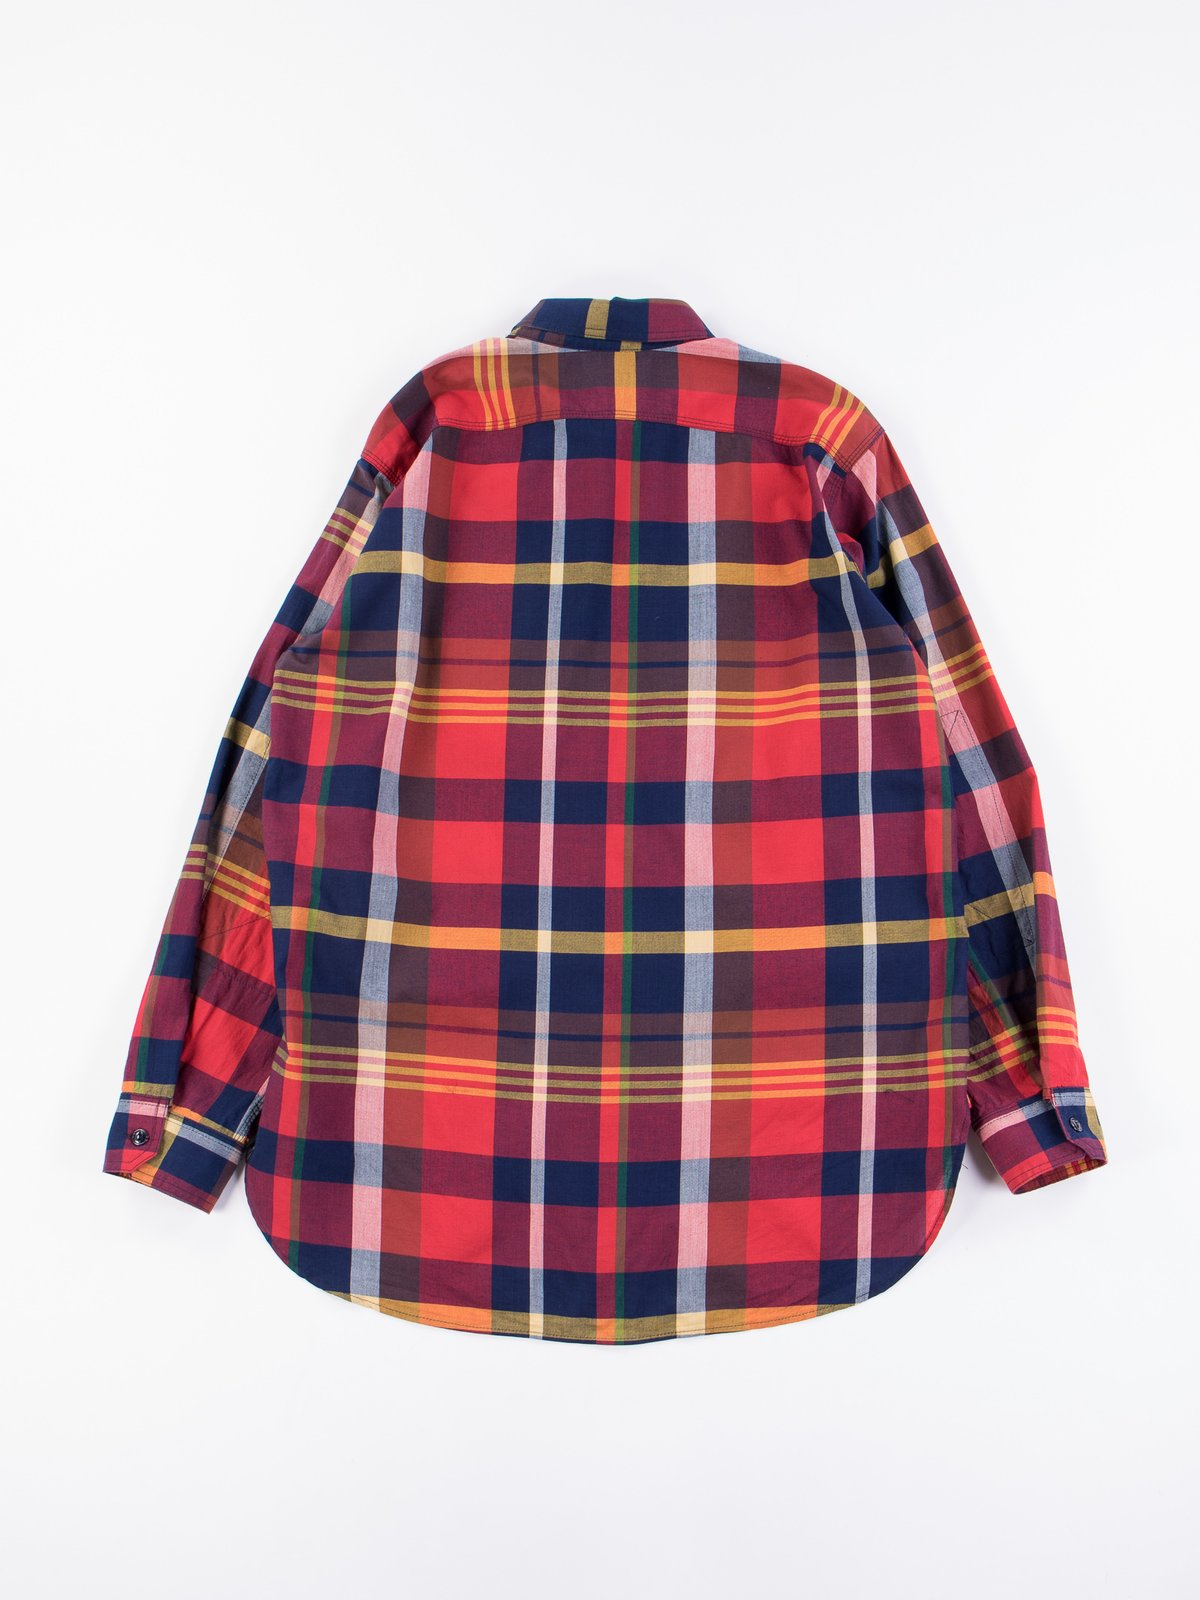 Red/Navy Cotton Big Madras Plaid Work Shirt - Image 5